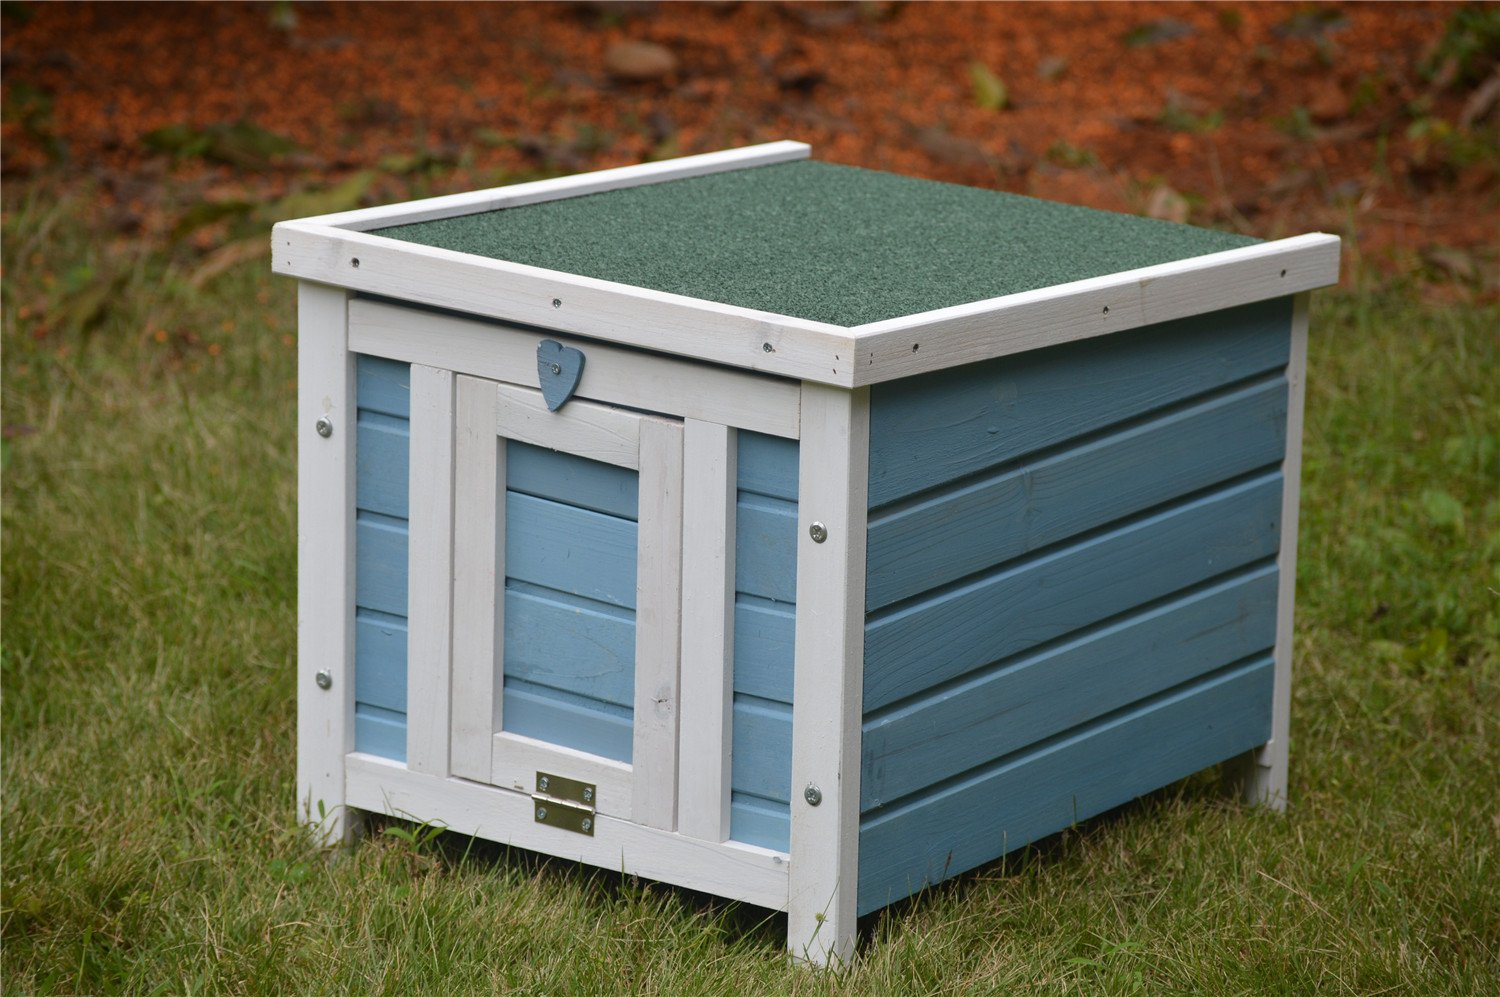 Amazon.com : BUNNY BUSINESS Cat/Puppy/Rabbit/Guinea Pig Wooden Hide House, 51 x 44 x 42cm, Blue : Pet Supplies